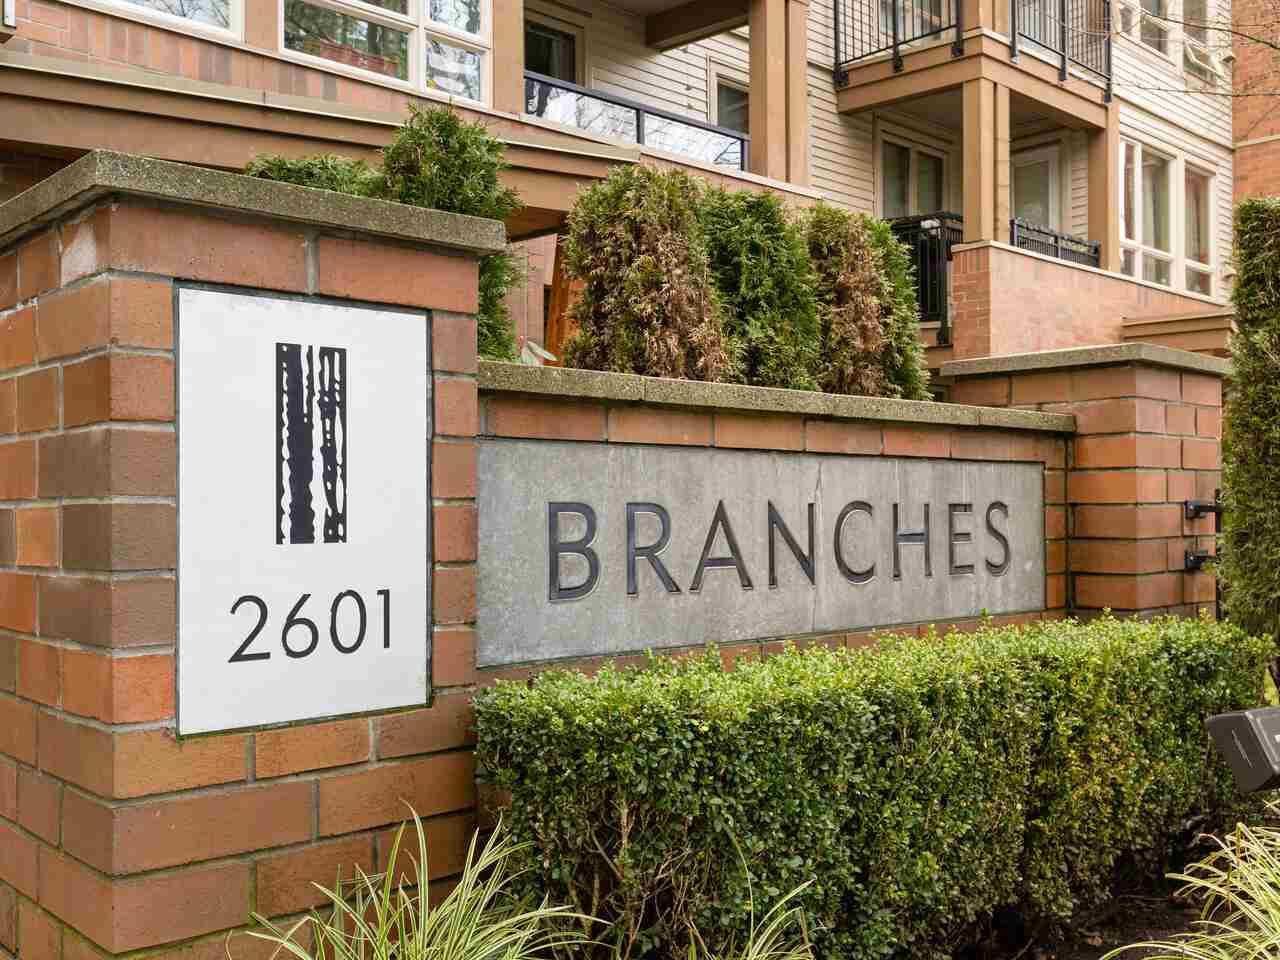 307 2601 WHITELEY COURT - Lynn Valley Apartment/Condo for sale, 2 Bedrooms (R2542449) - #1